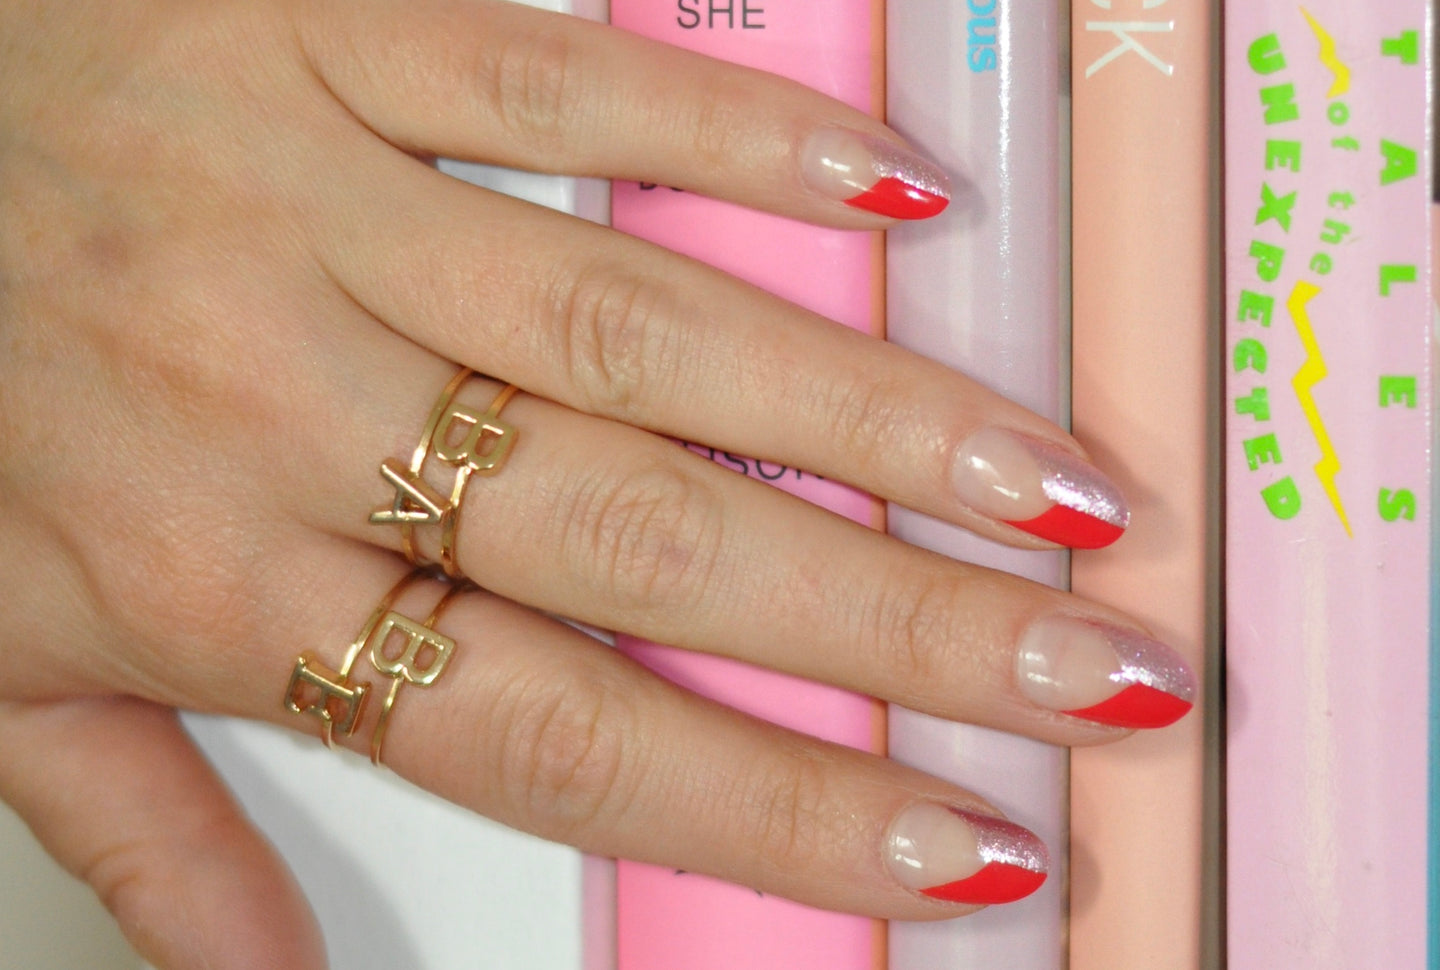 Paintbox Nails CEO Jane Hong Explains Why Self-Care Is More Important Than Ever